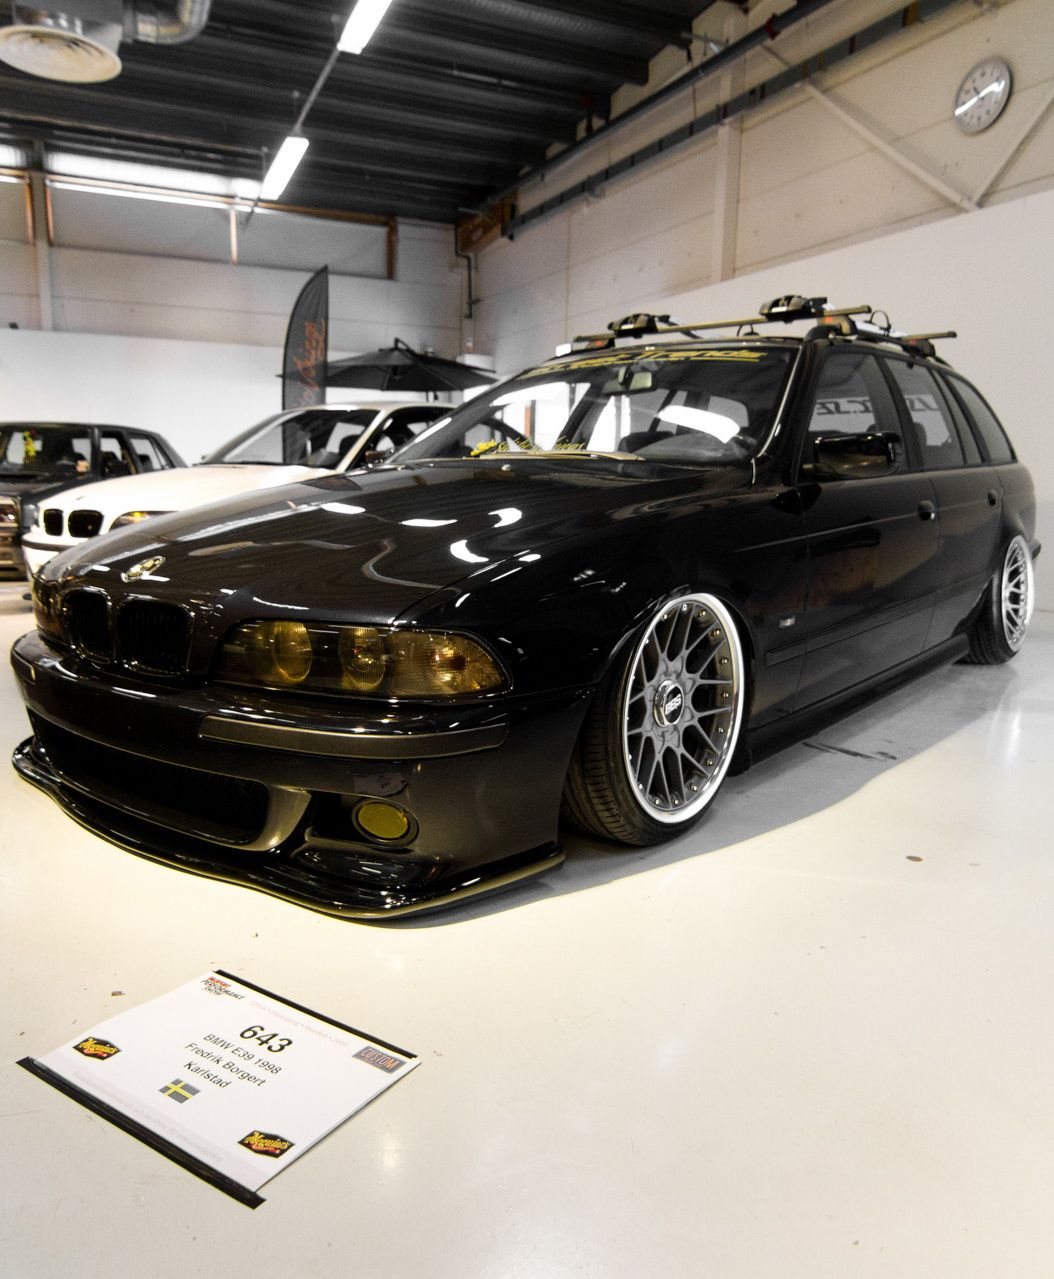 bmw e39 touring bmw 4ever pinterest bmw e39 bmw and cars. Black Bedroom Furniture Sets. Home Design Ideas